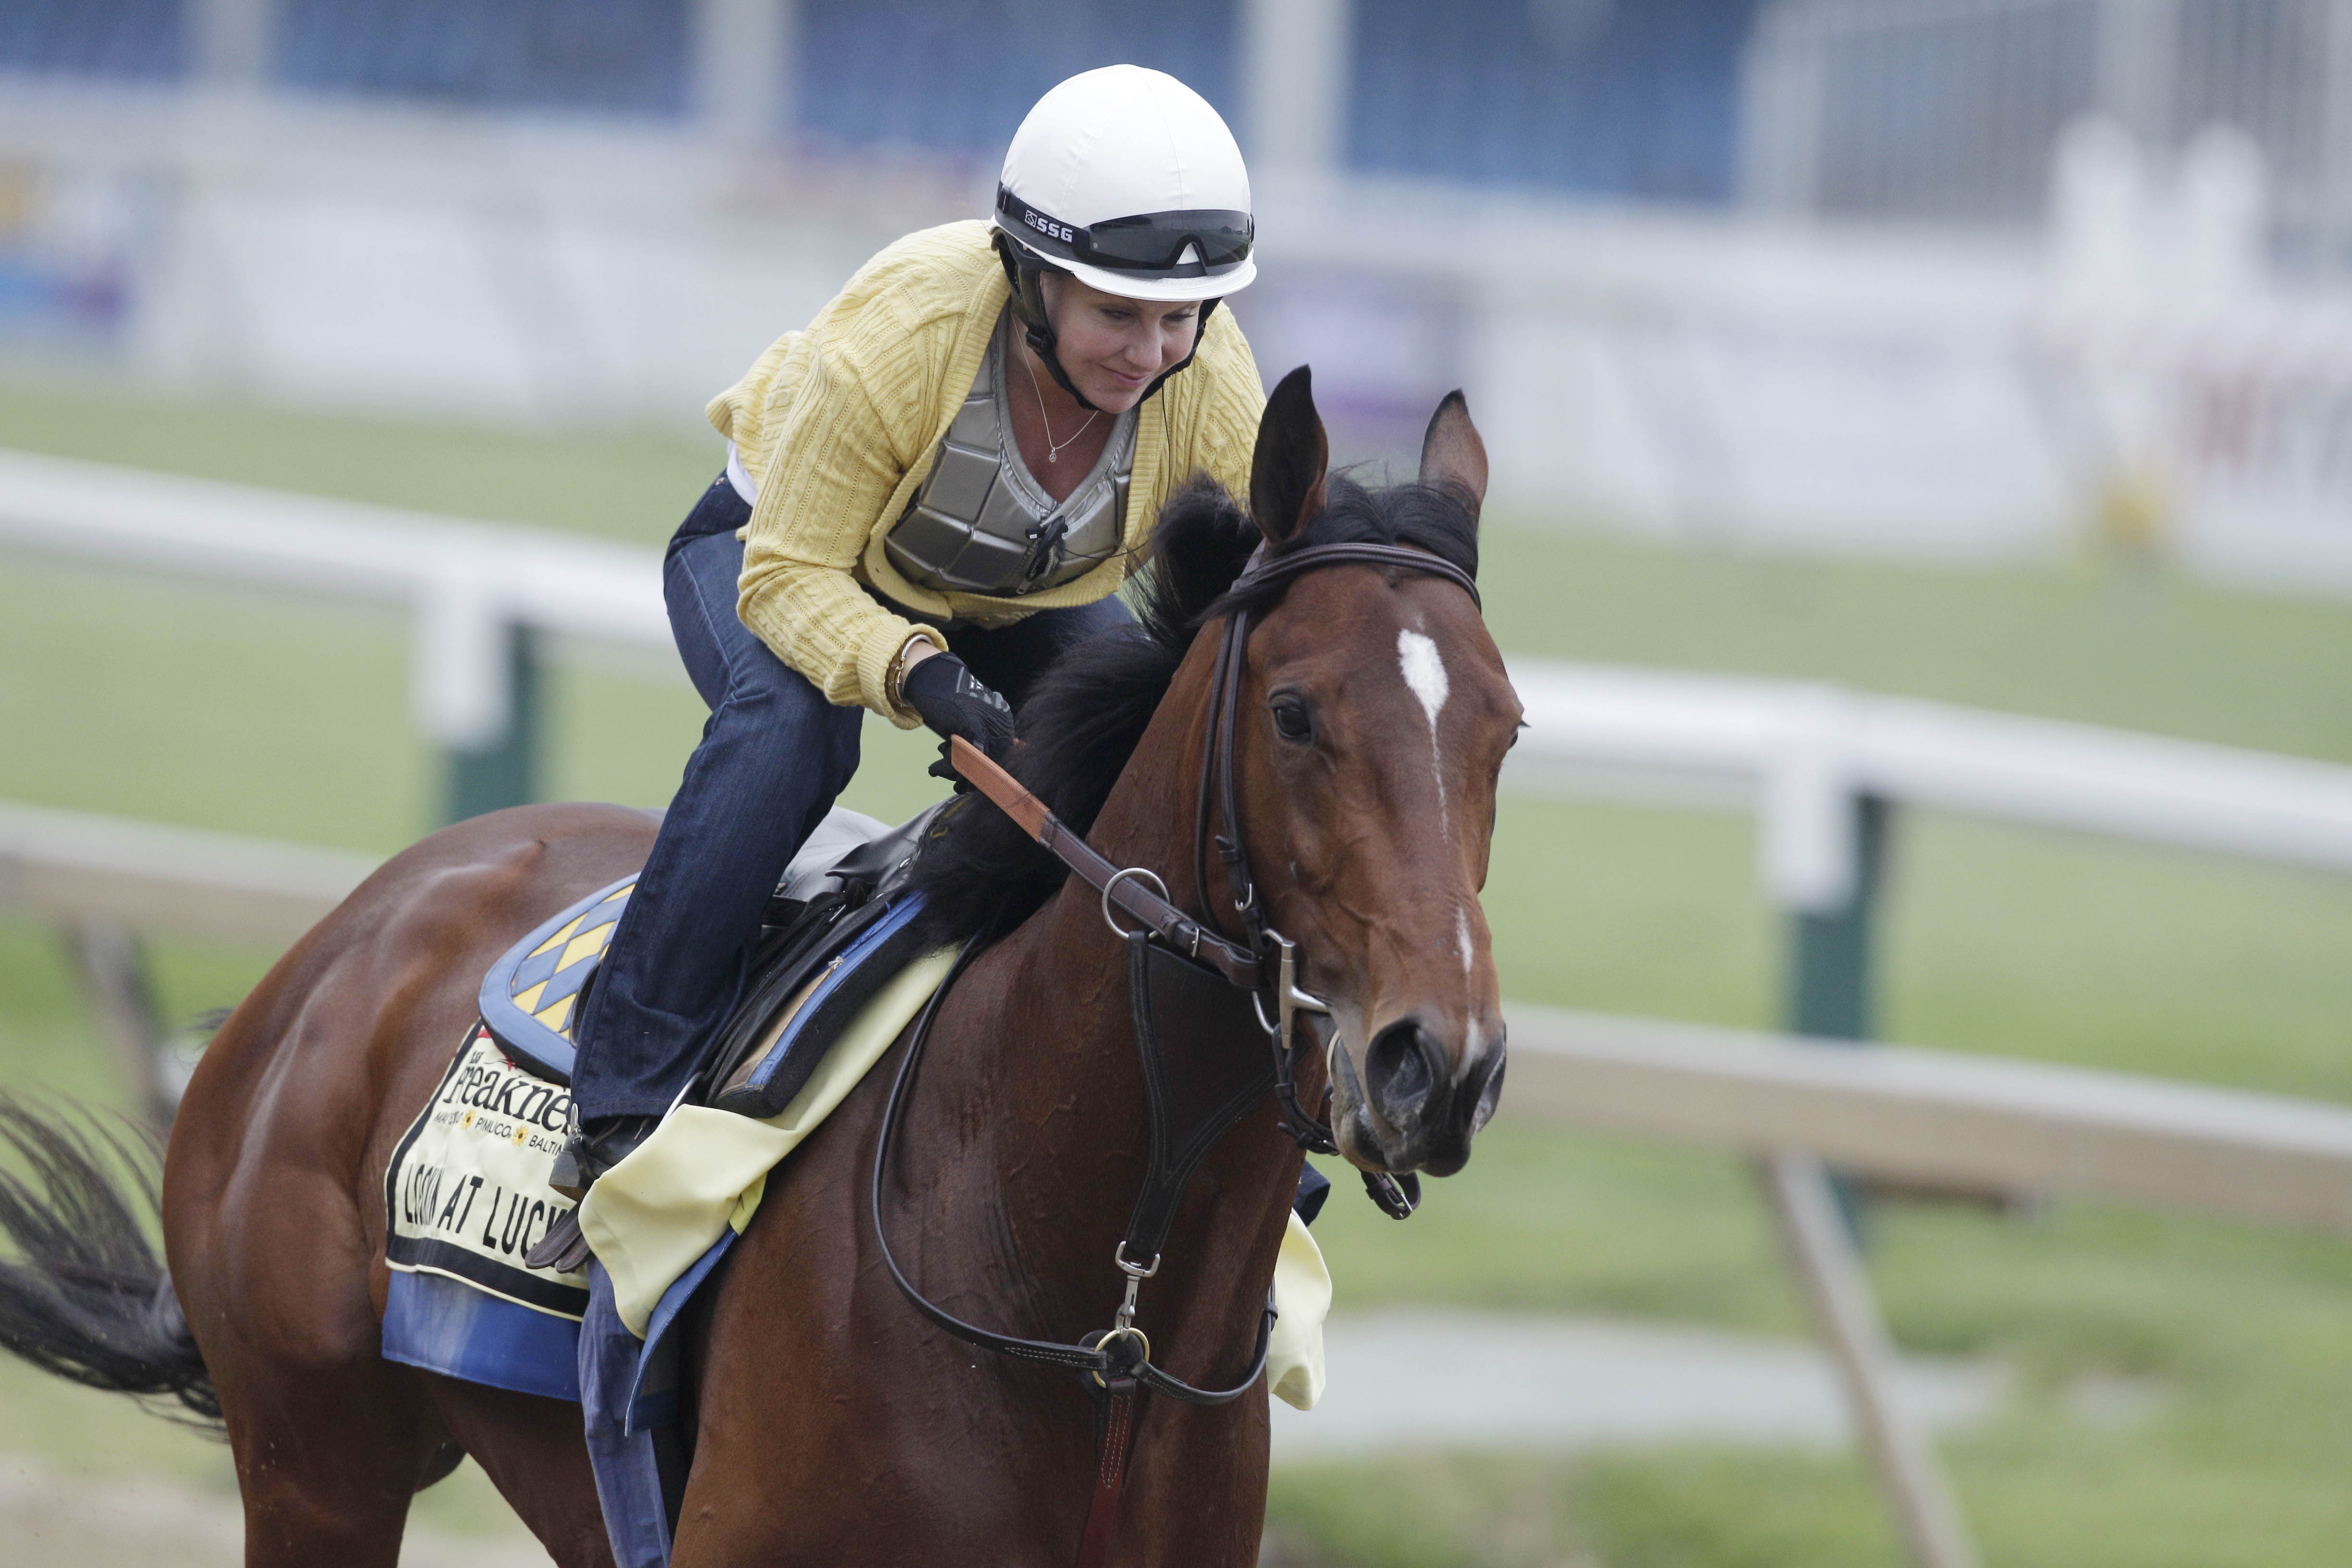 FILE - In this May 14, 2010 file photo, Preakness entrant Lookin At Lucky with Dana Barnes aboard gallops during morning workouts at Pimlico Race Course, in Baltimore.   Even with Derby winner Super Saver in the field, it was Bob Baffert's Preakness winne